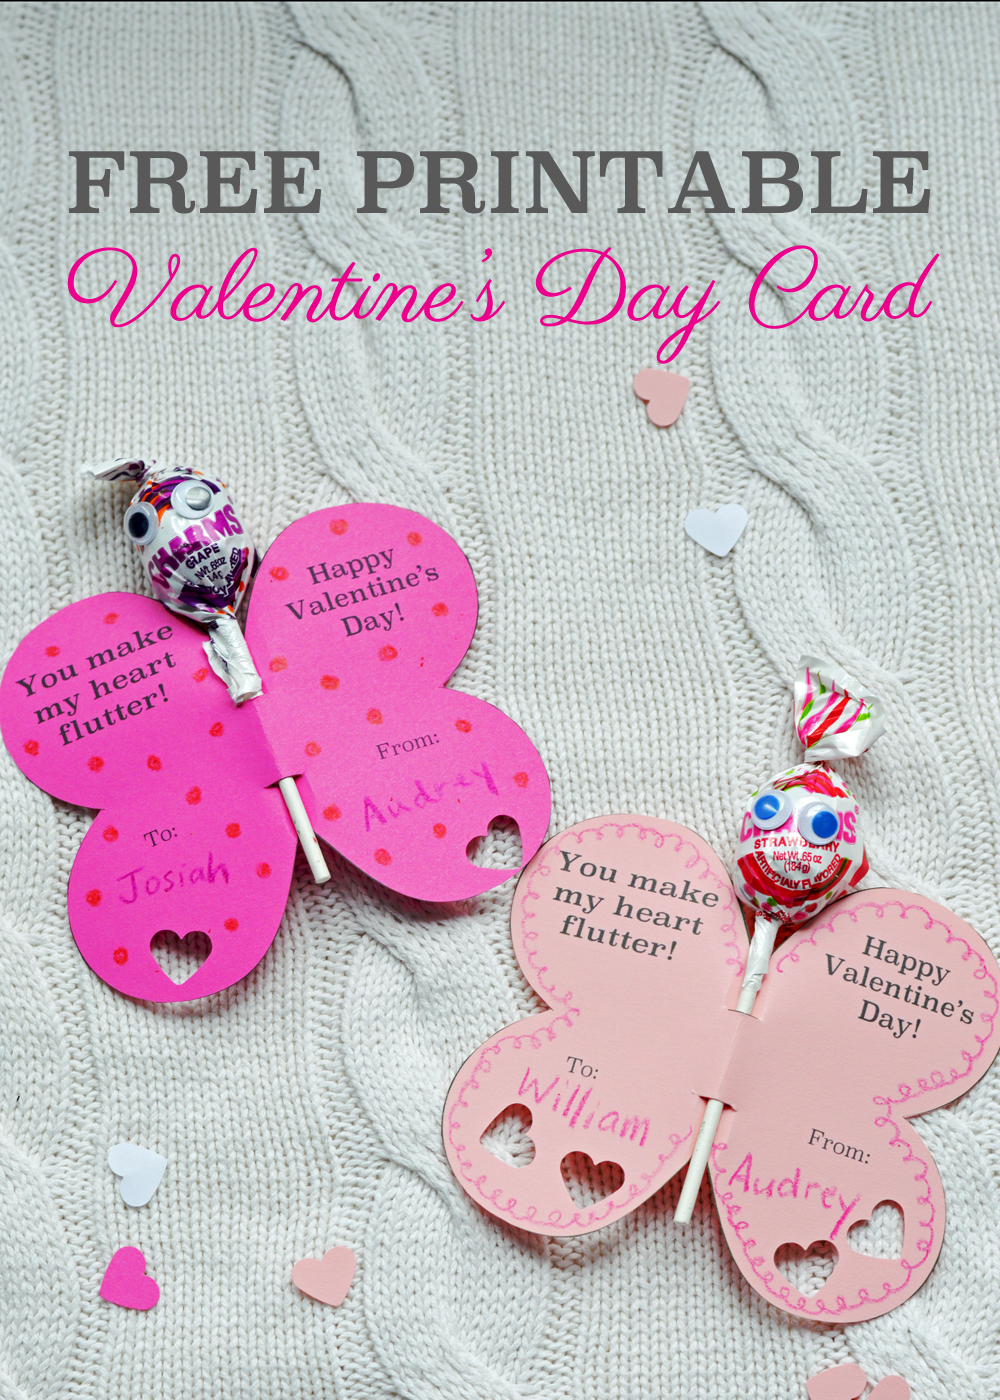 It's just a picture of Superb Print Free Valentine Cards